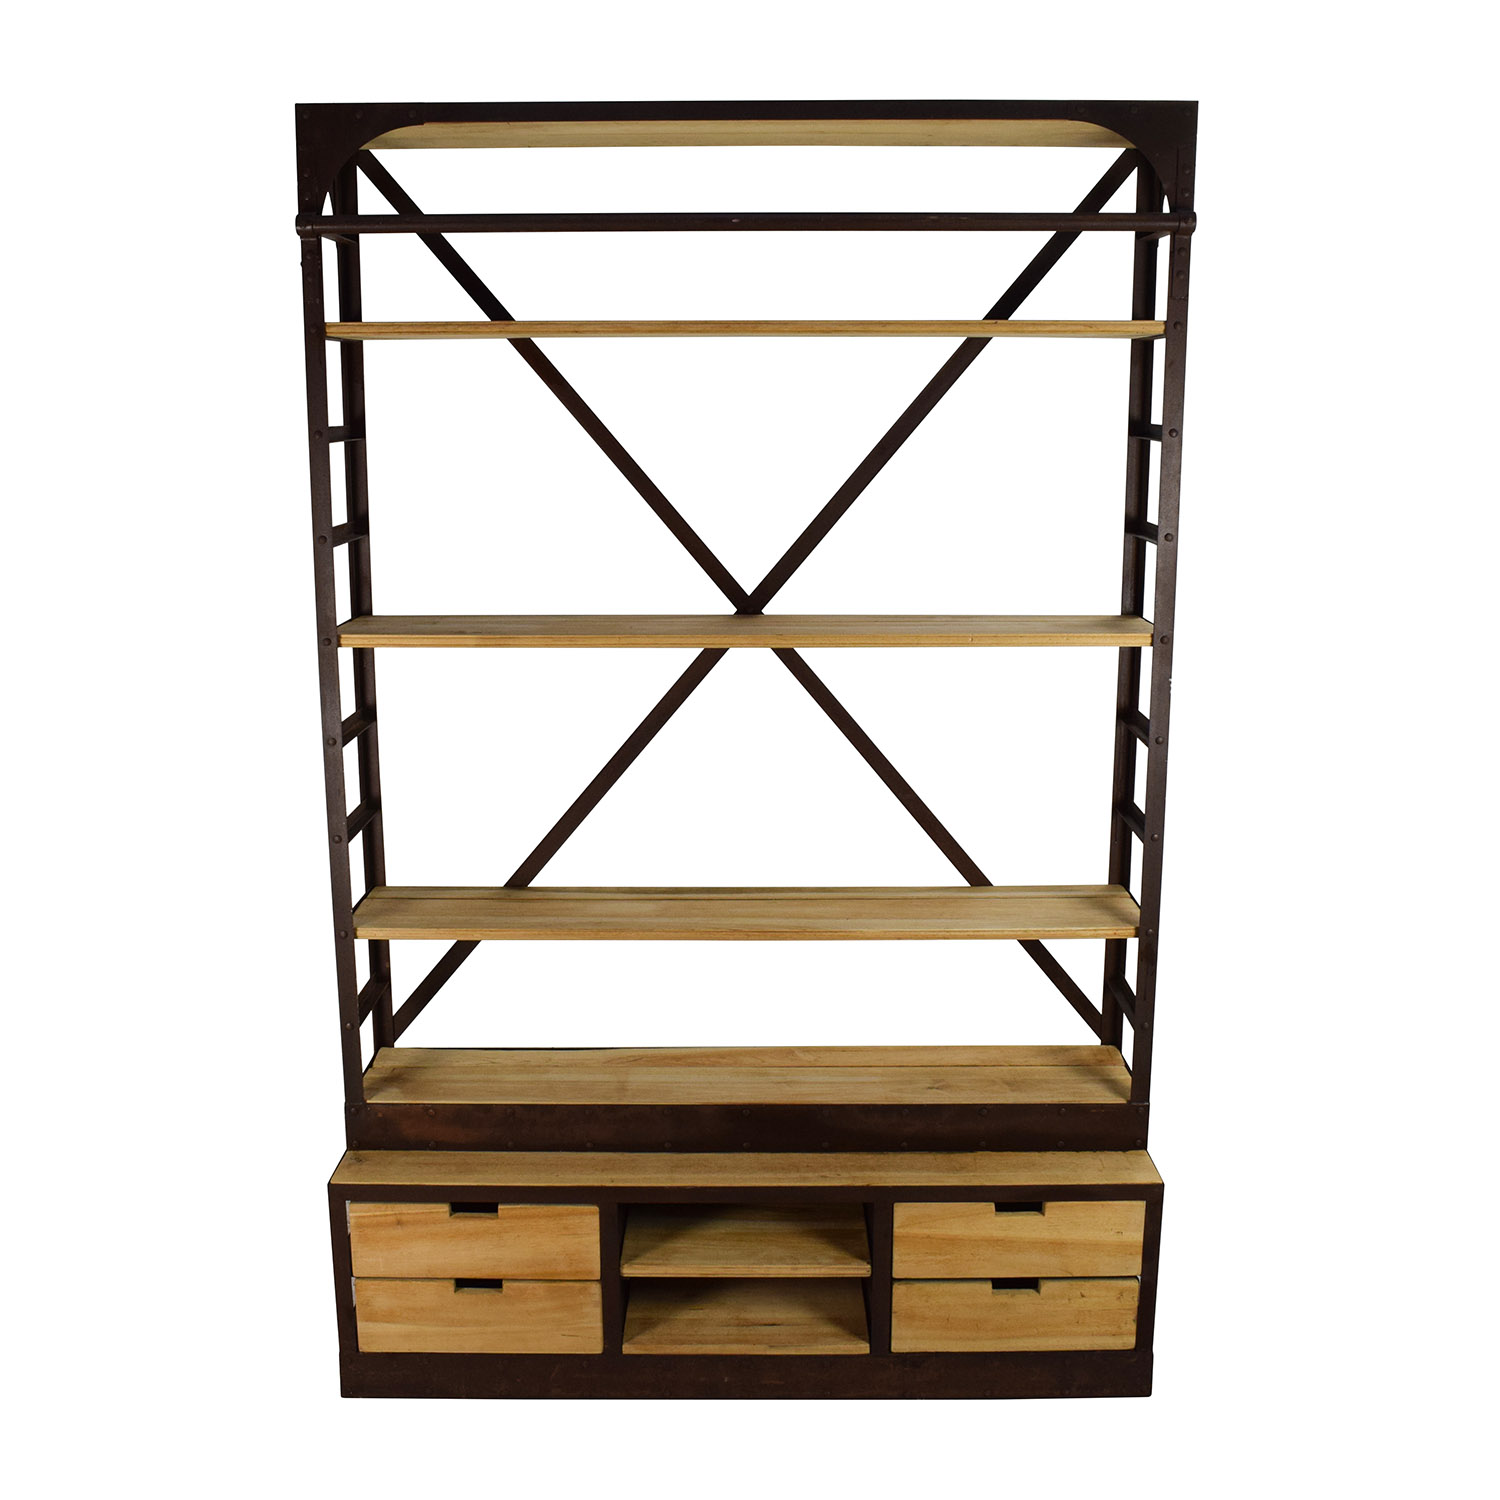 Restoration Hardware Restoration Hardware 1950s Dutch Shipyard Shelving Storage